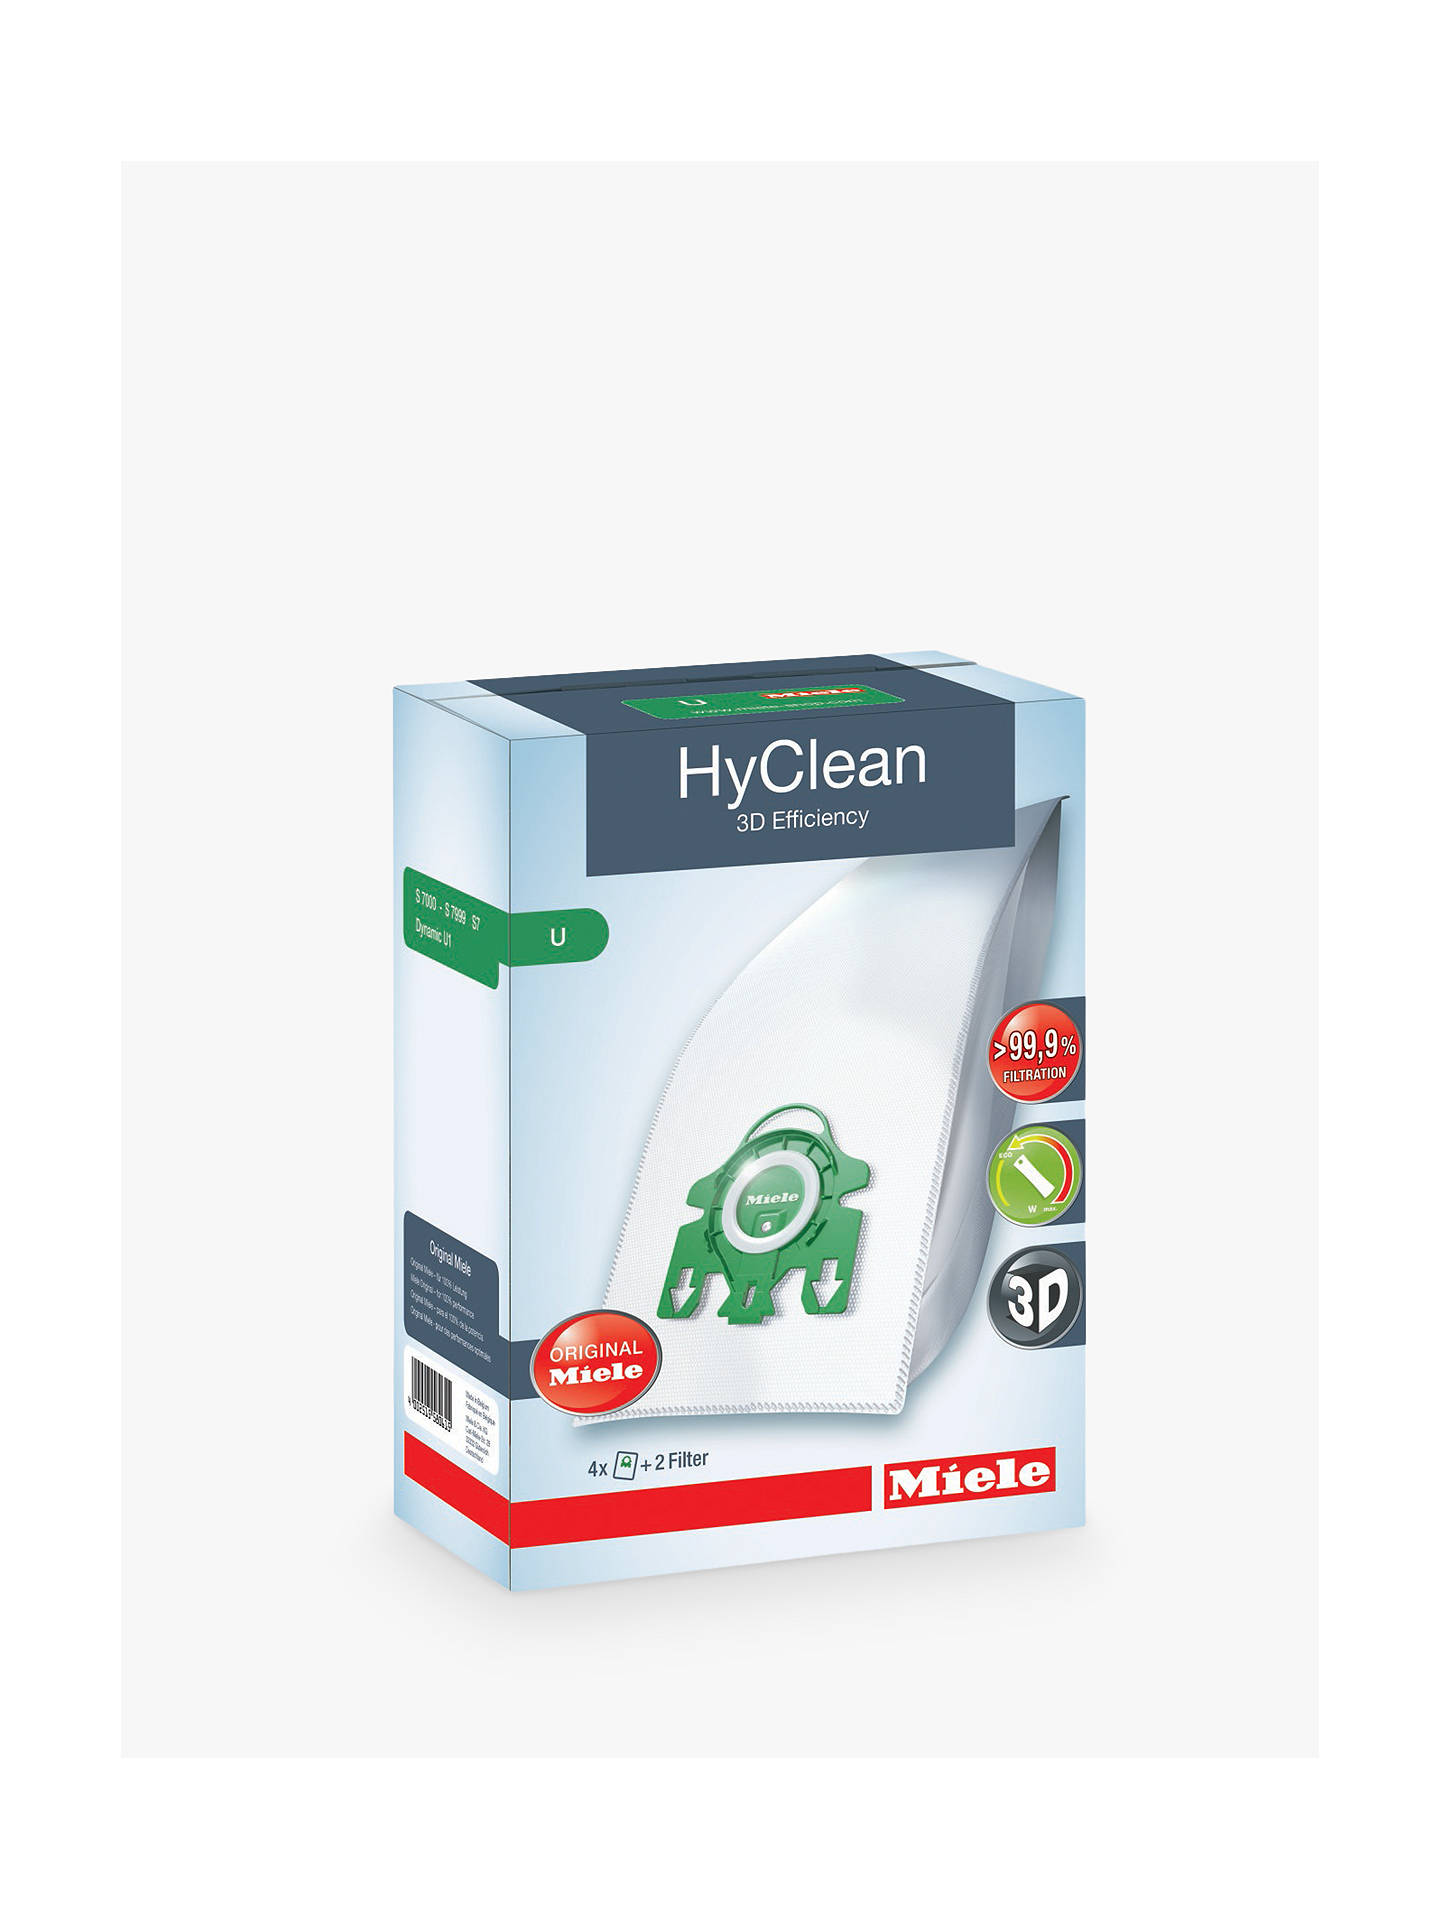 BuyMiele SB U HyClean 3D Efficiency Vacuum Cleaner Bag Online at johnlewis.com